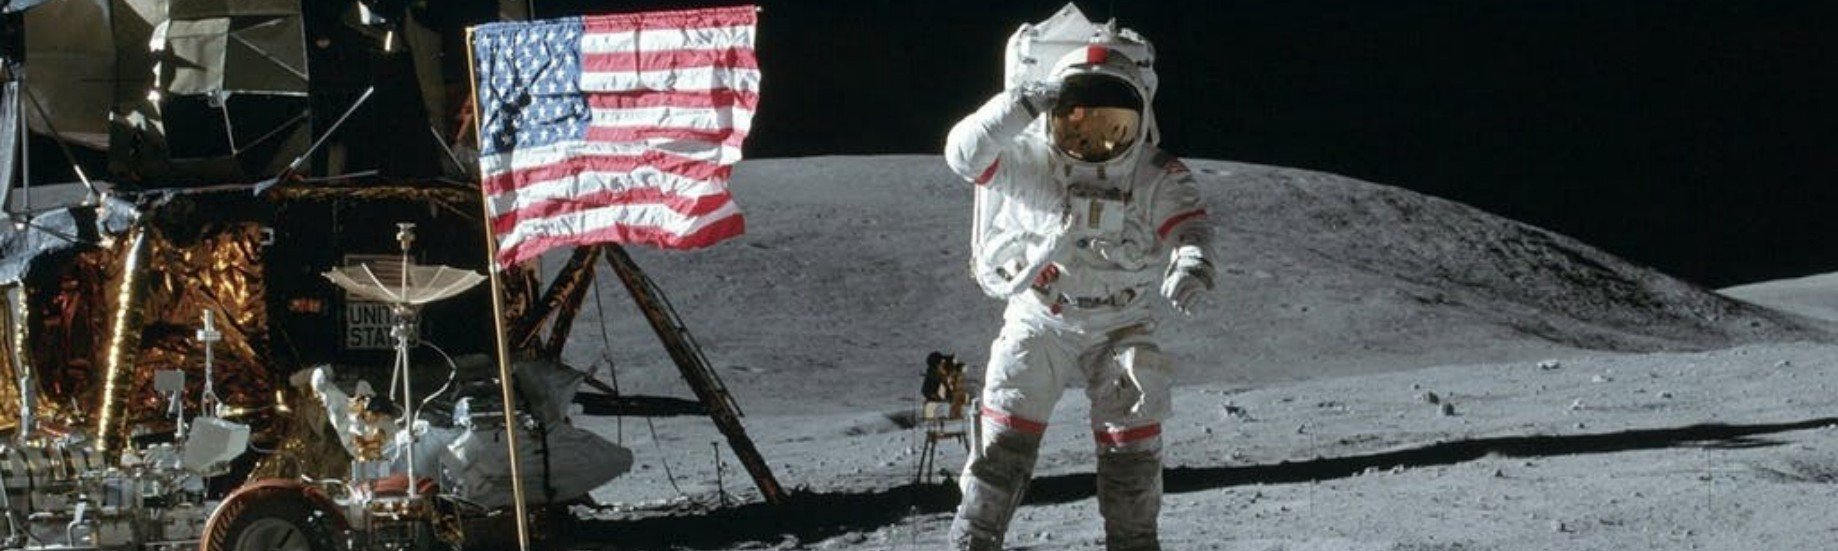 moon landing jokes funny moon landing on beanocom - 1838×551